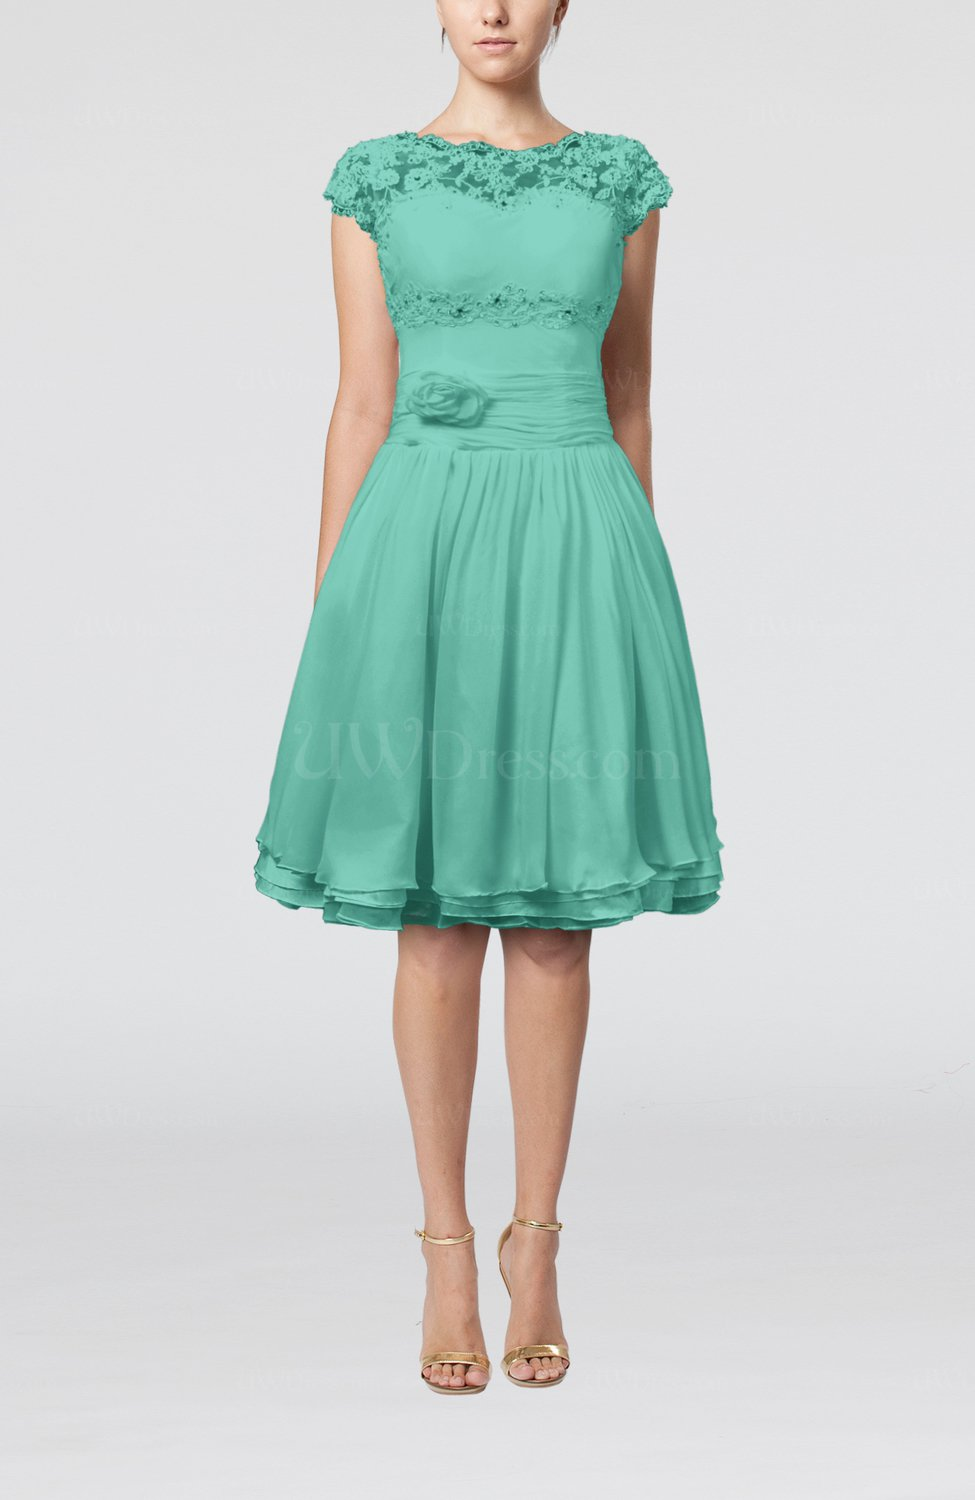 9b1a24f6578d Mint Green Cinderella A-line Scalloped Edge Short Sleeve Chiffon Knee  Length Bridesmaid Dresses (Style D79382)